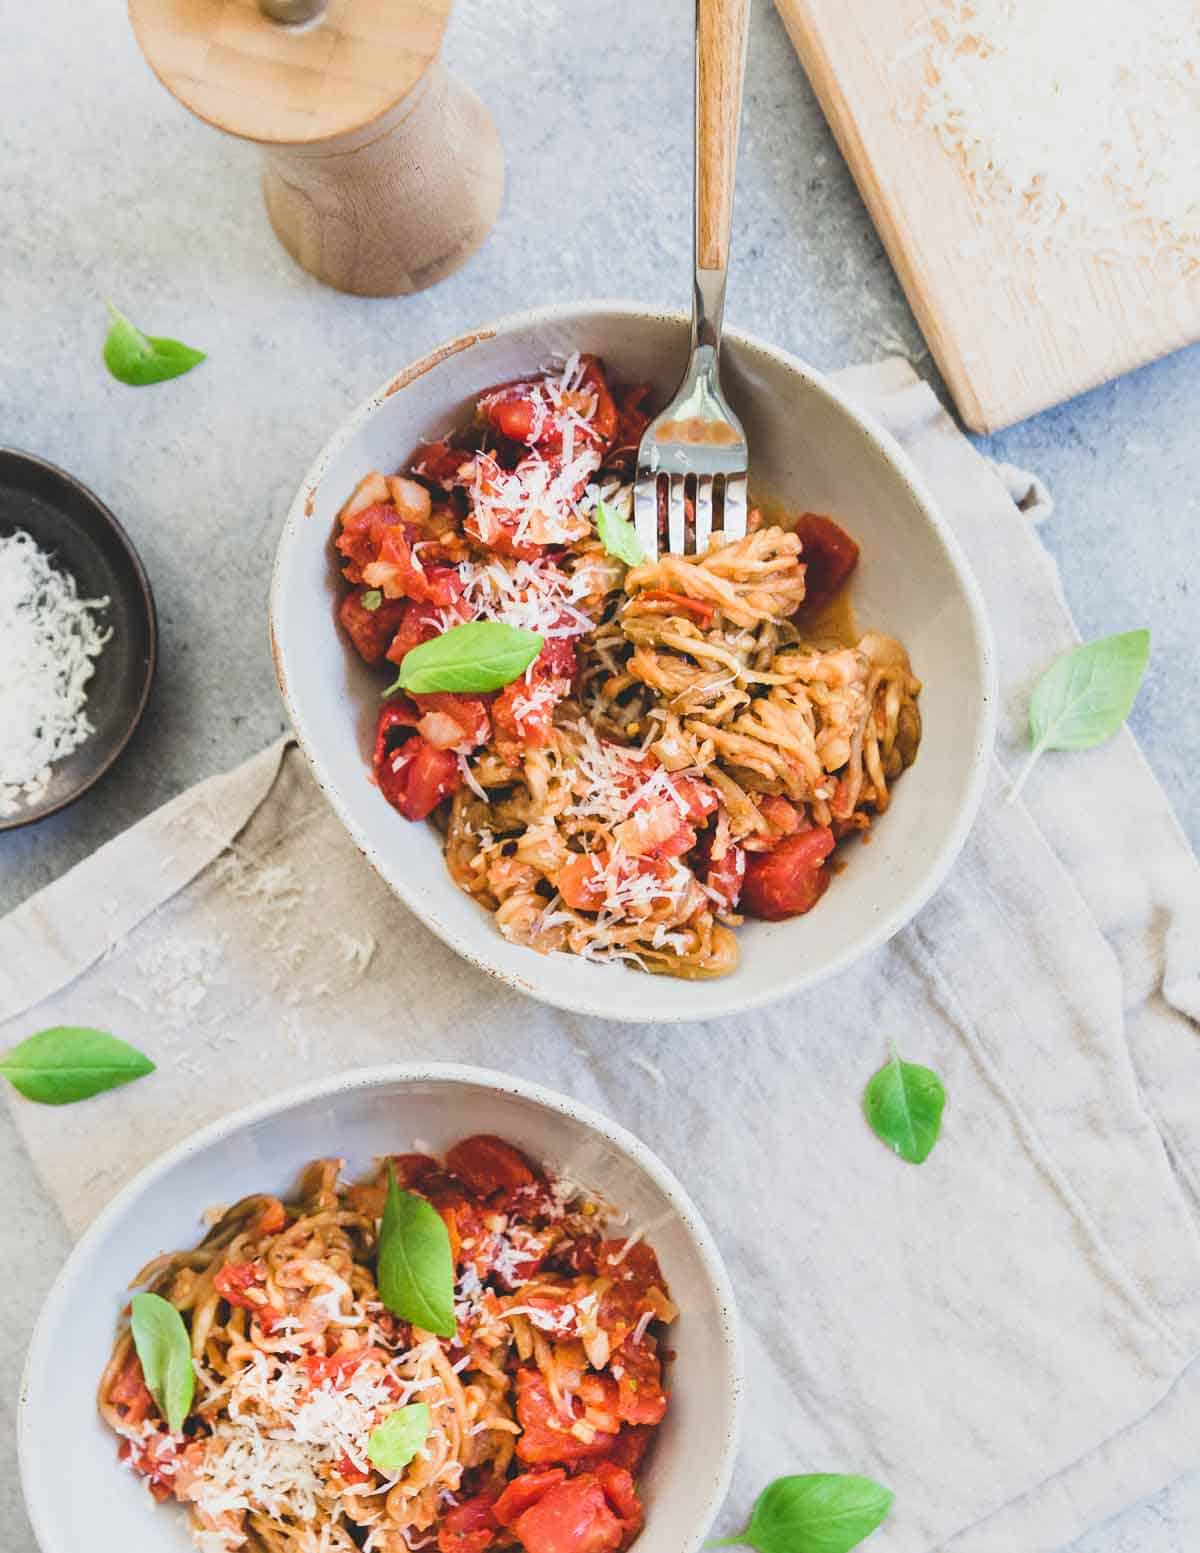 Eggplant noodles are tossed with a fresh chunky tomato basil sauce and topped with parmesan cheese.